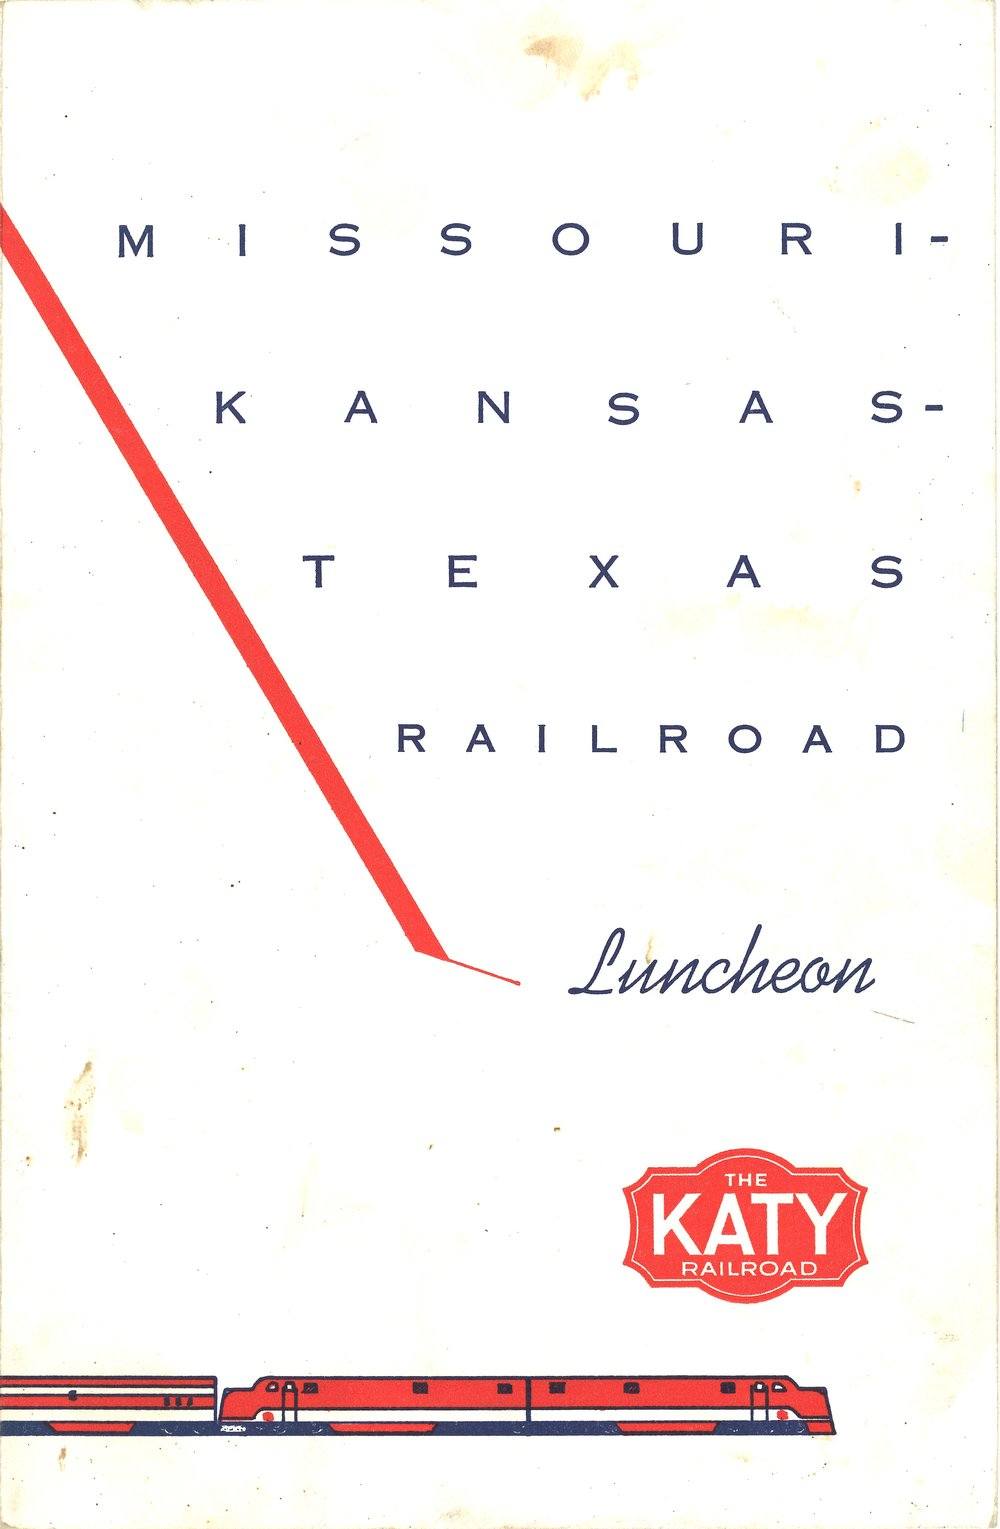 MKT Railroad Katy Railroad Lunch Menu _Sm1a.jpg